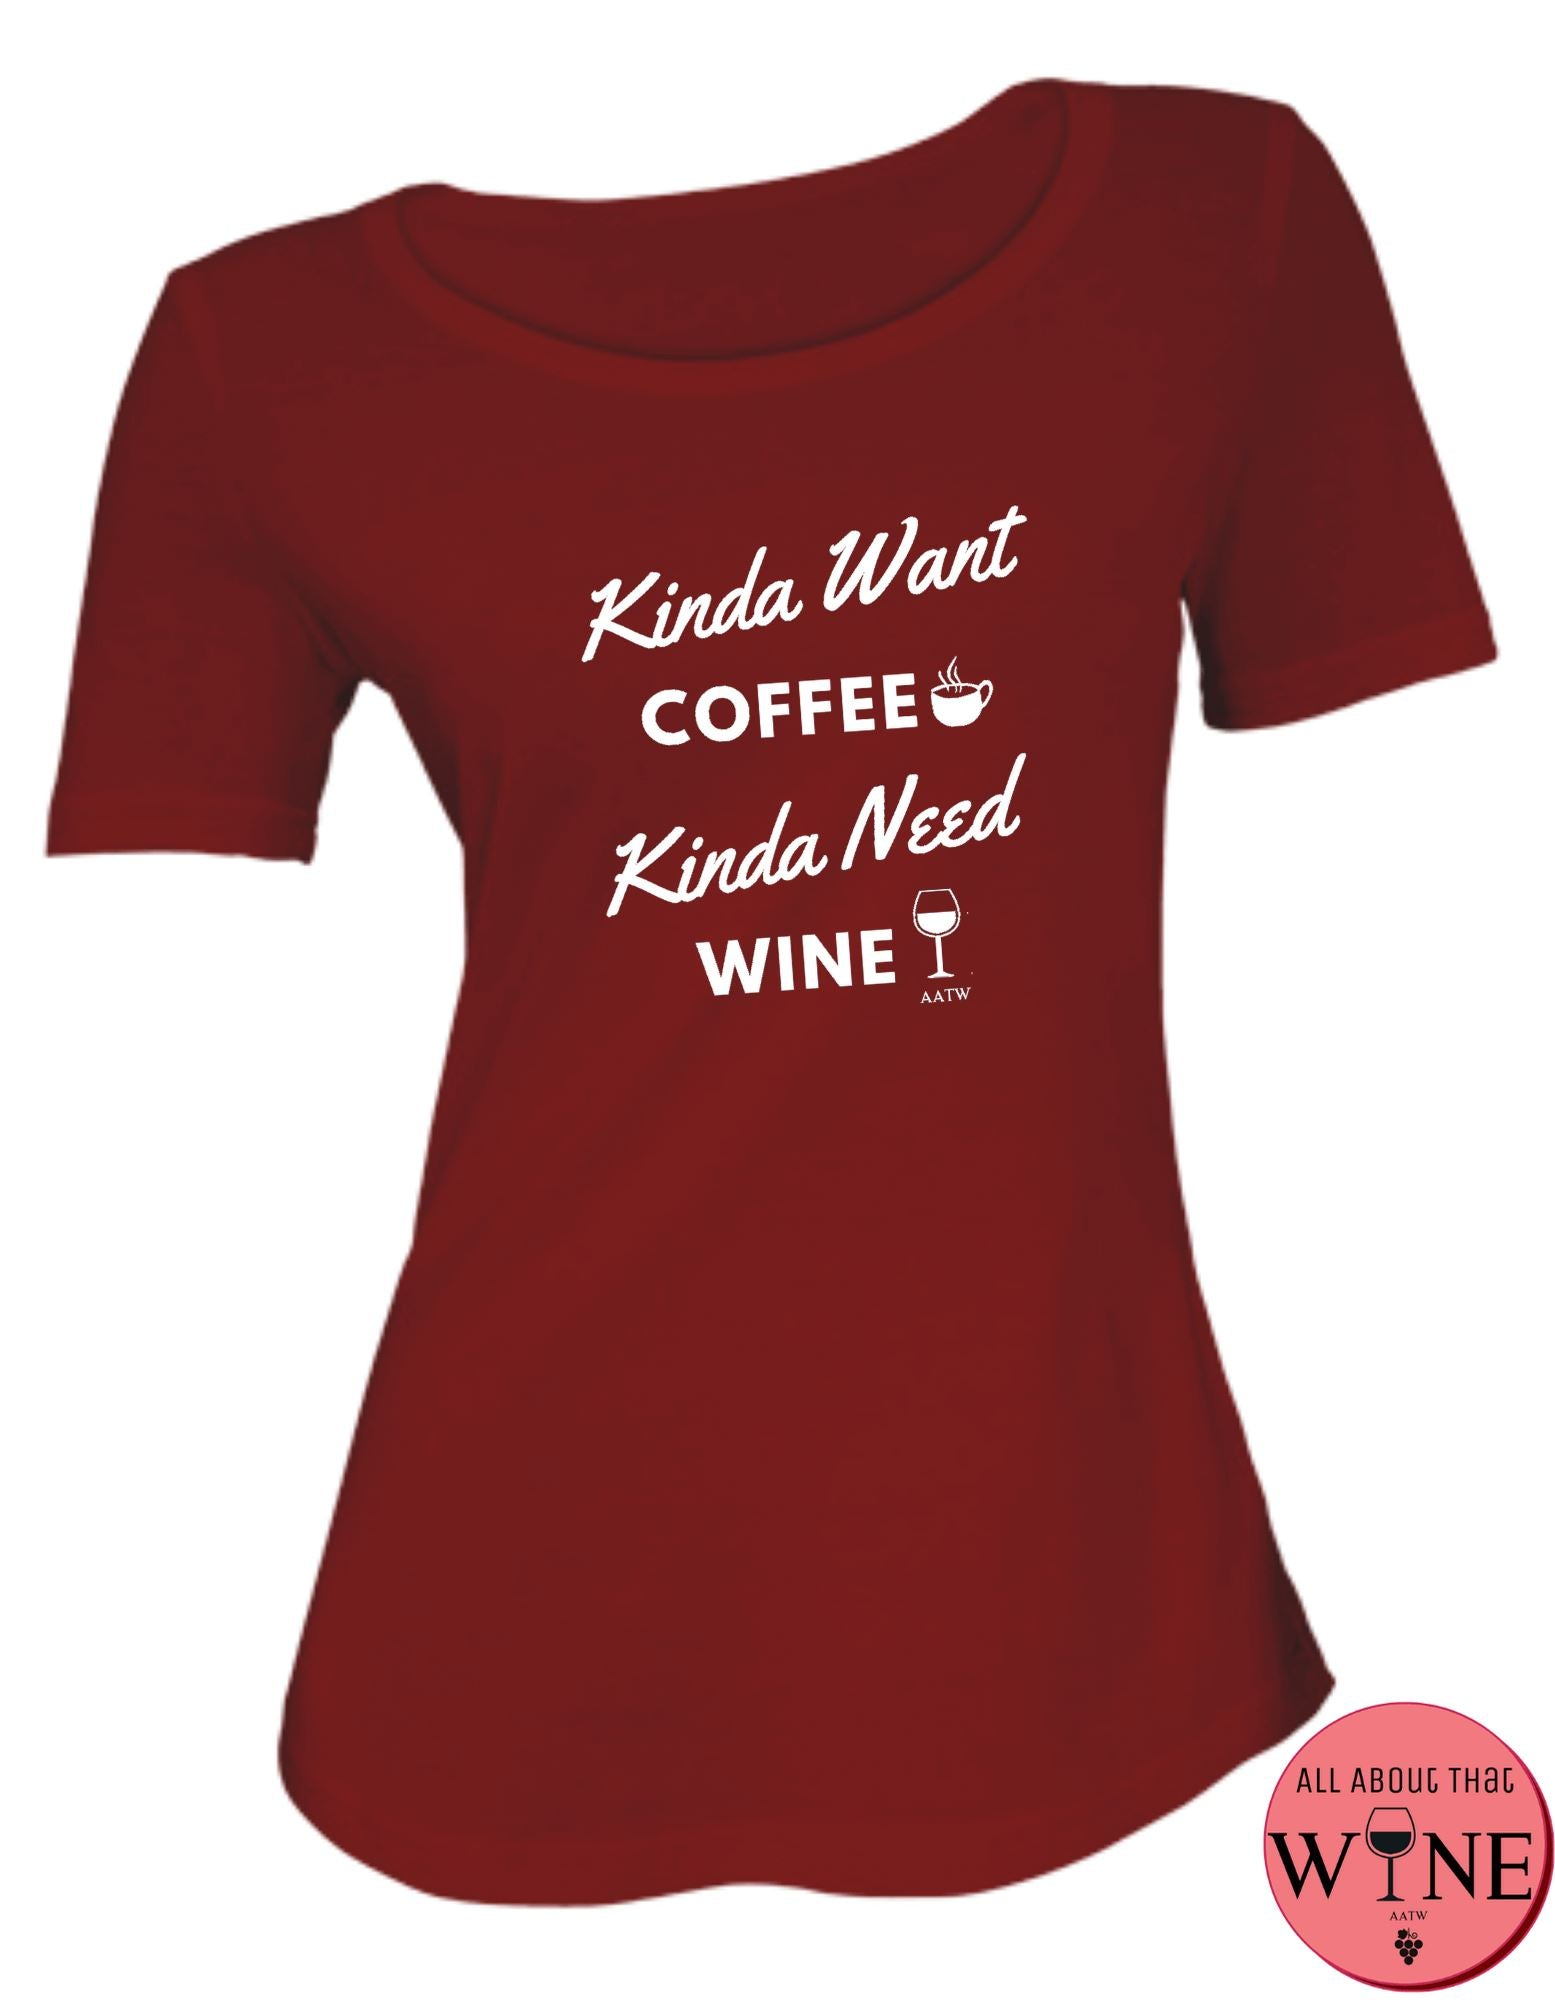 Kinda Want Coffee S Deep red with white